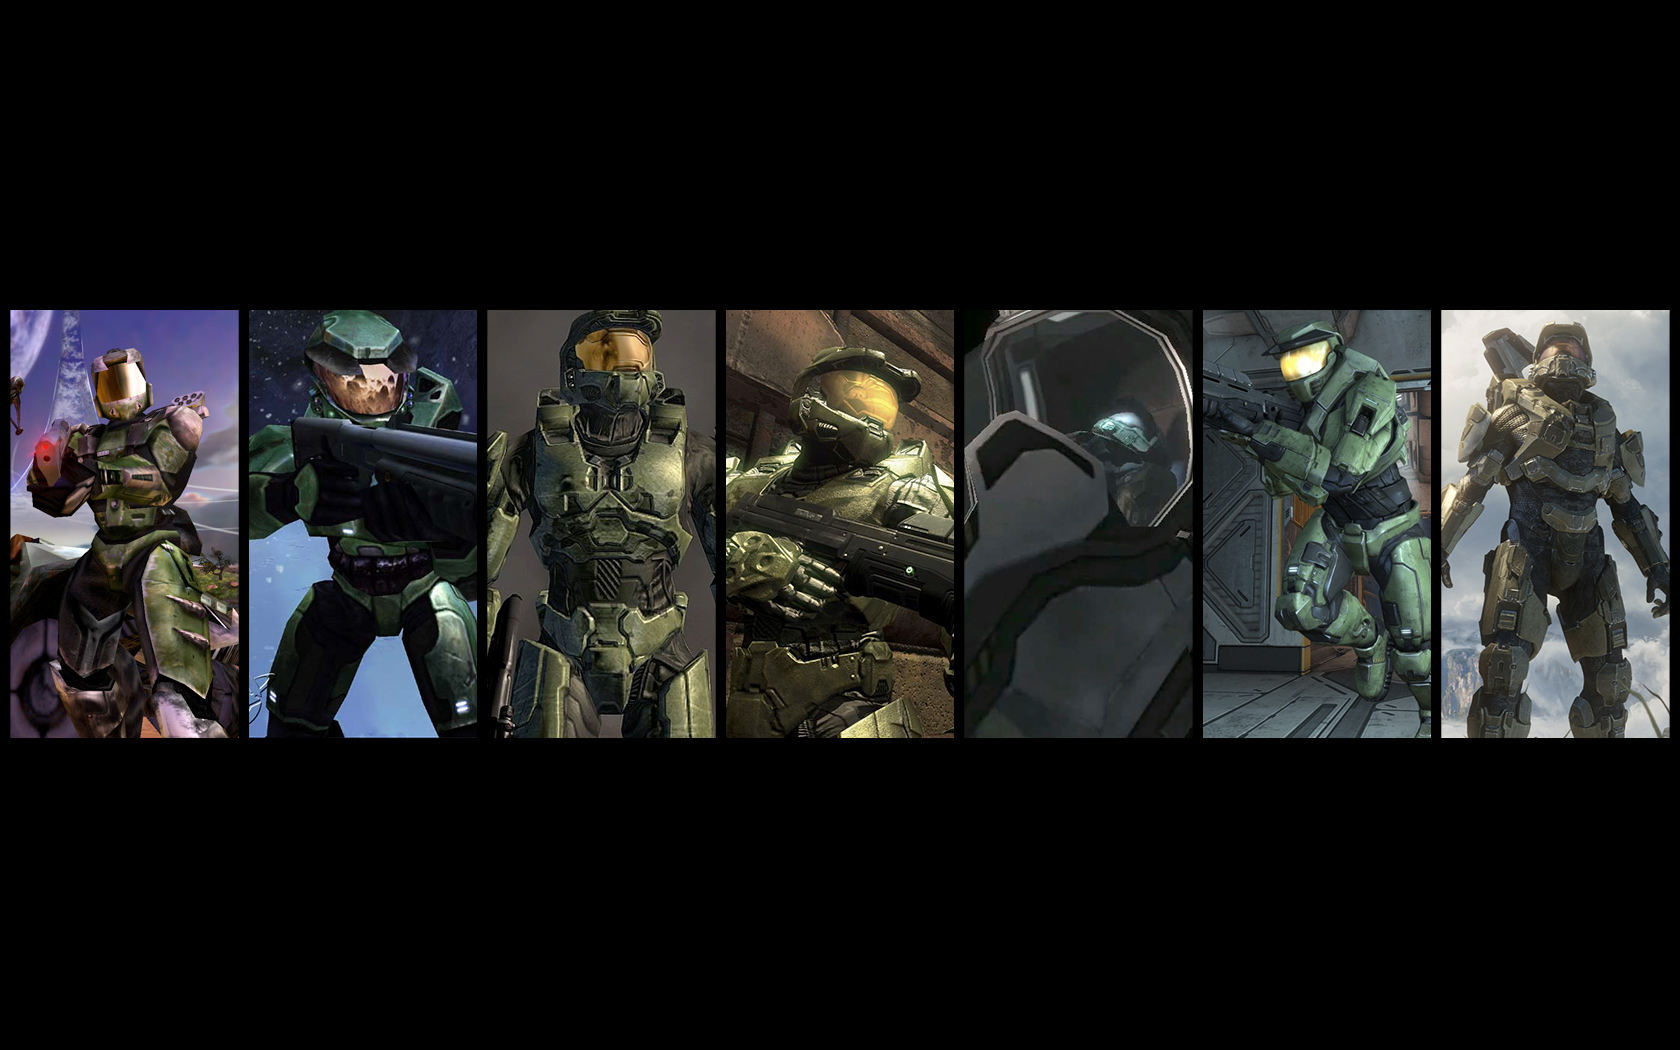 Free download Halo 3 Master Chief And Arbiter Wallpaper